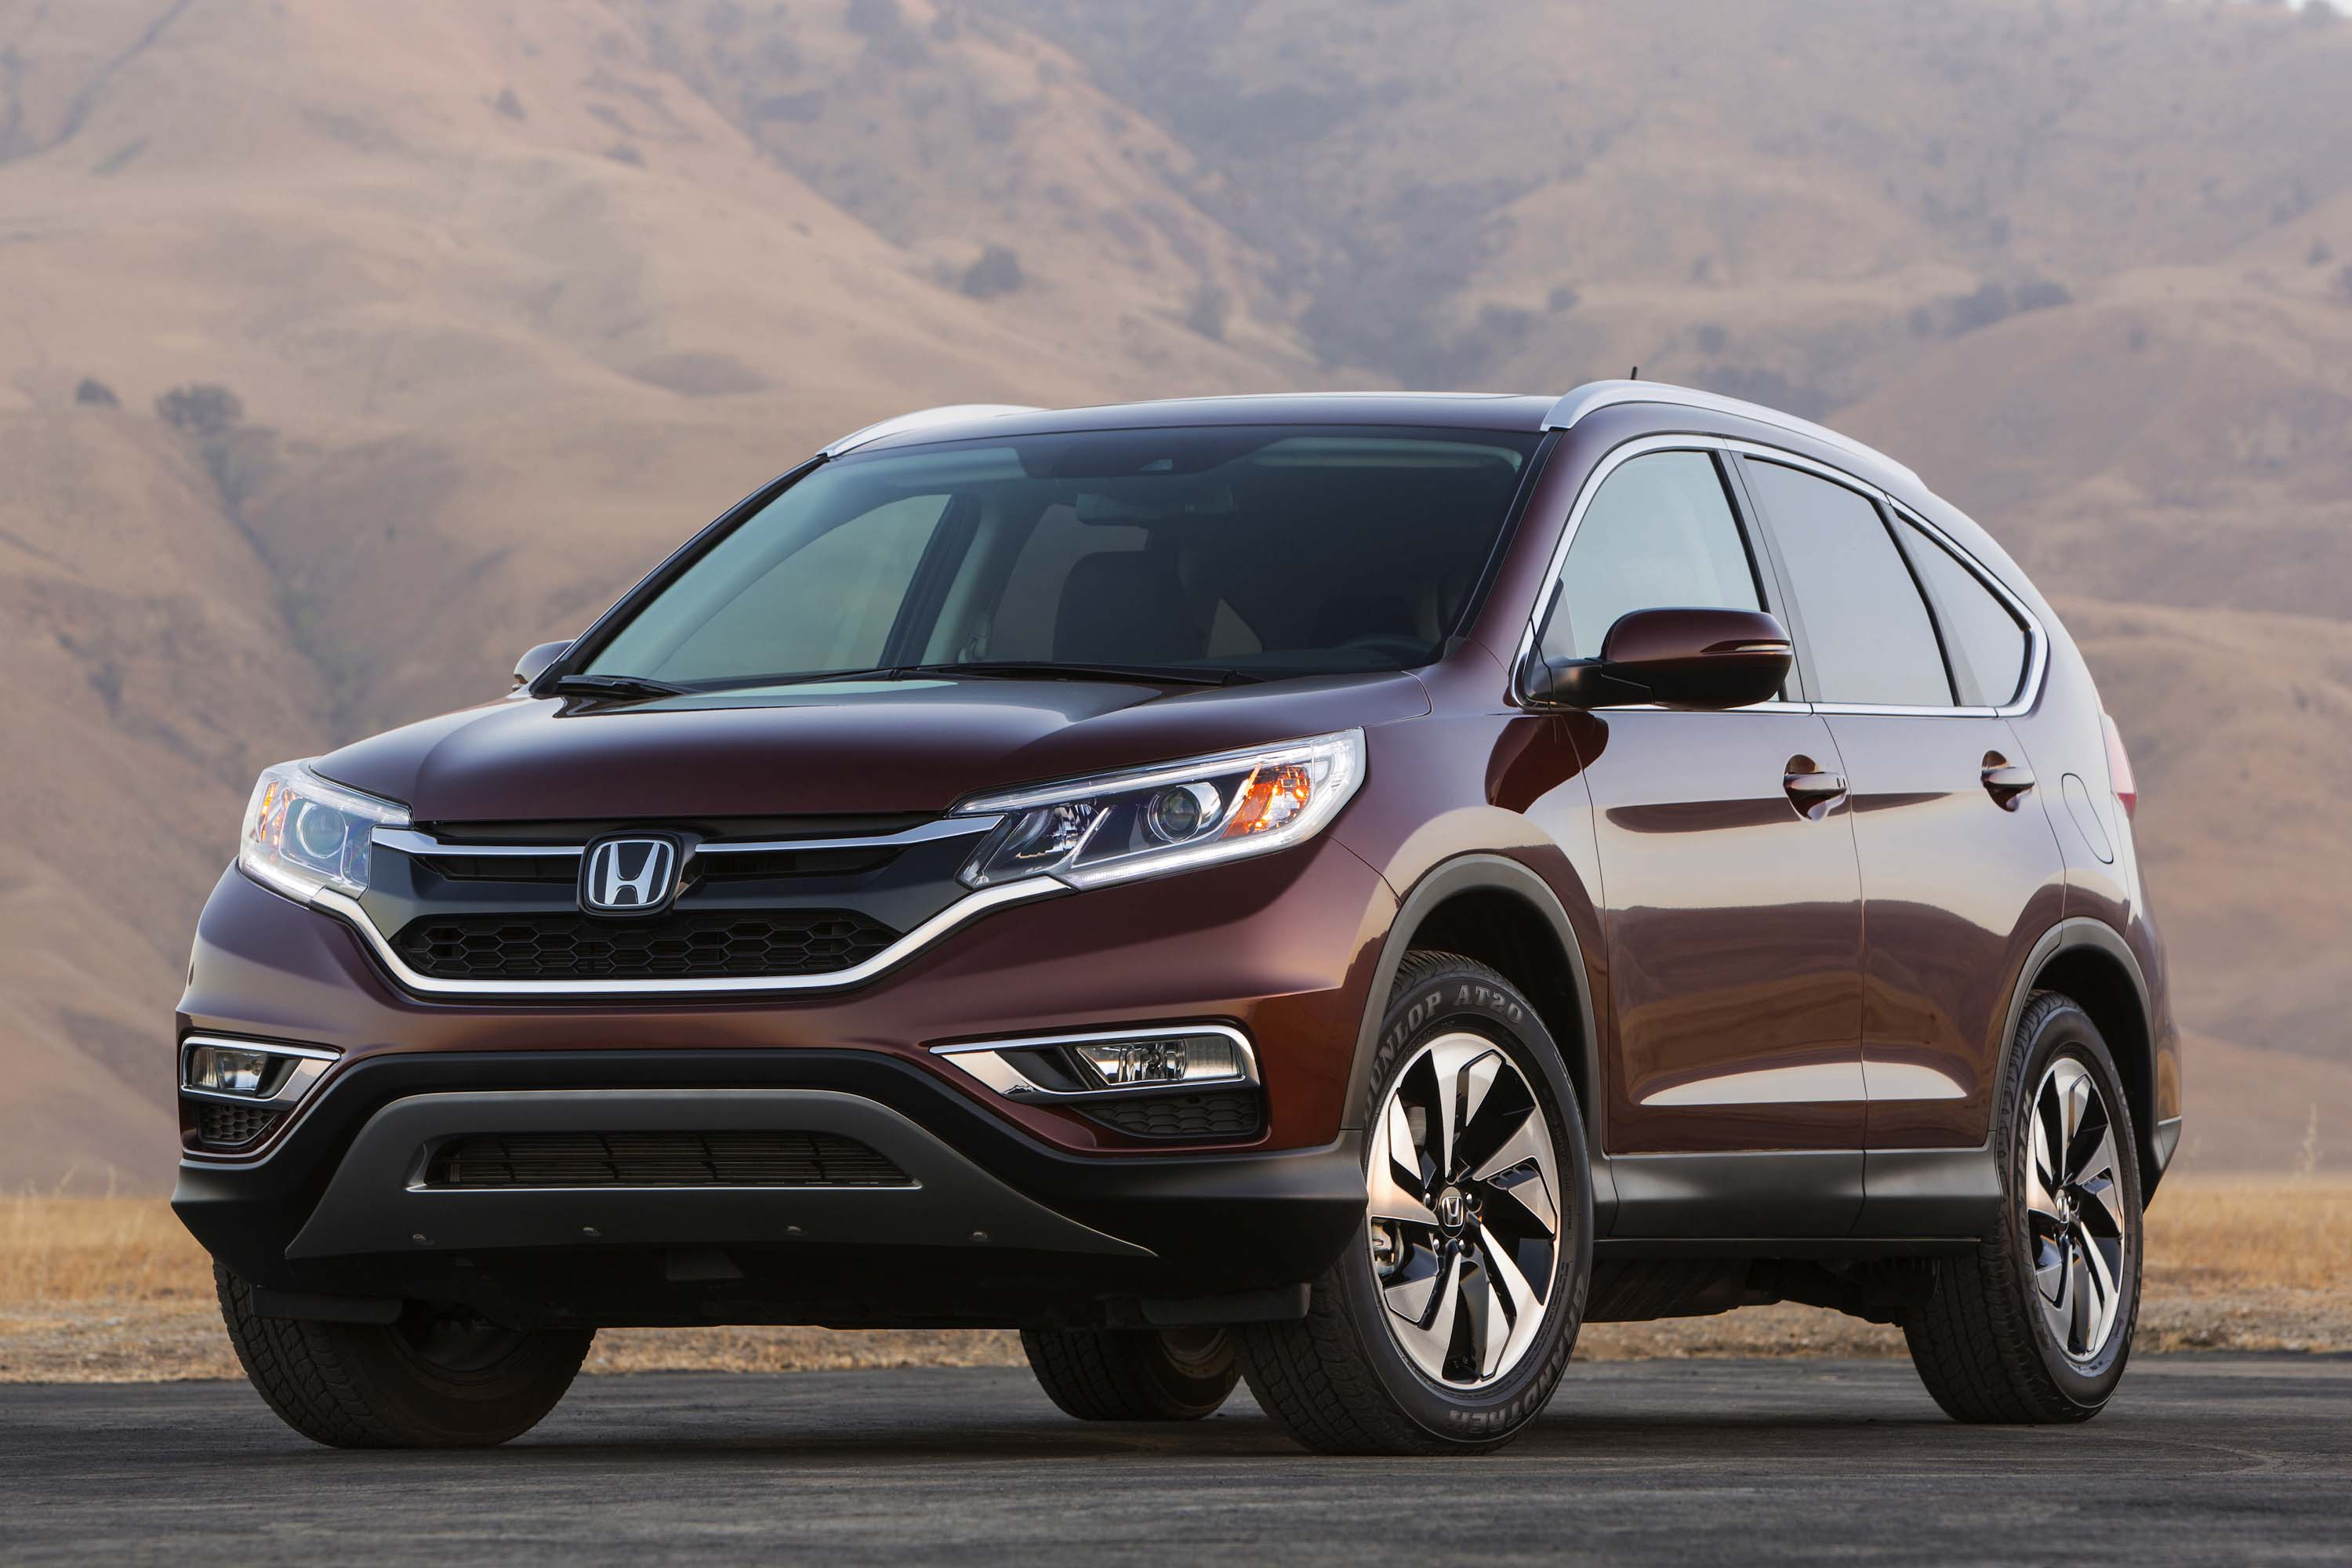 more us car names top news s volkswagen the suvs u eyes speed suv in atlas two on cars dodge has